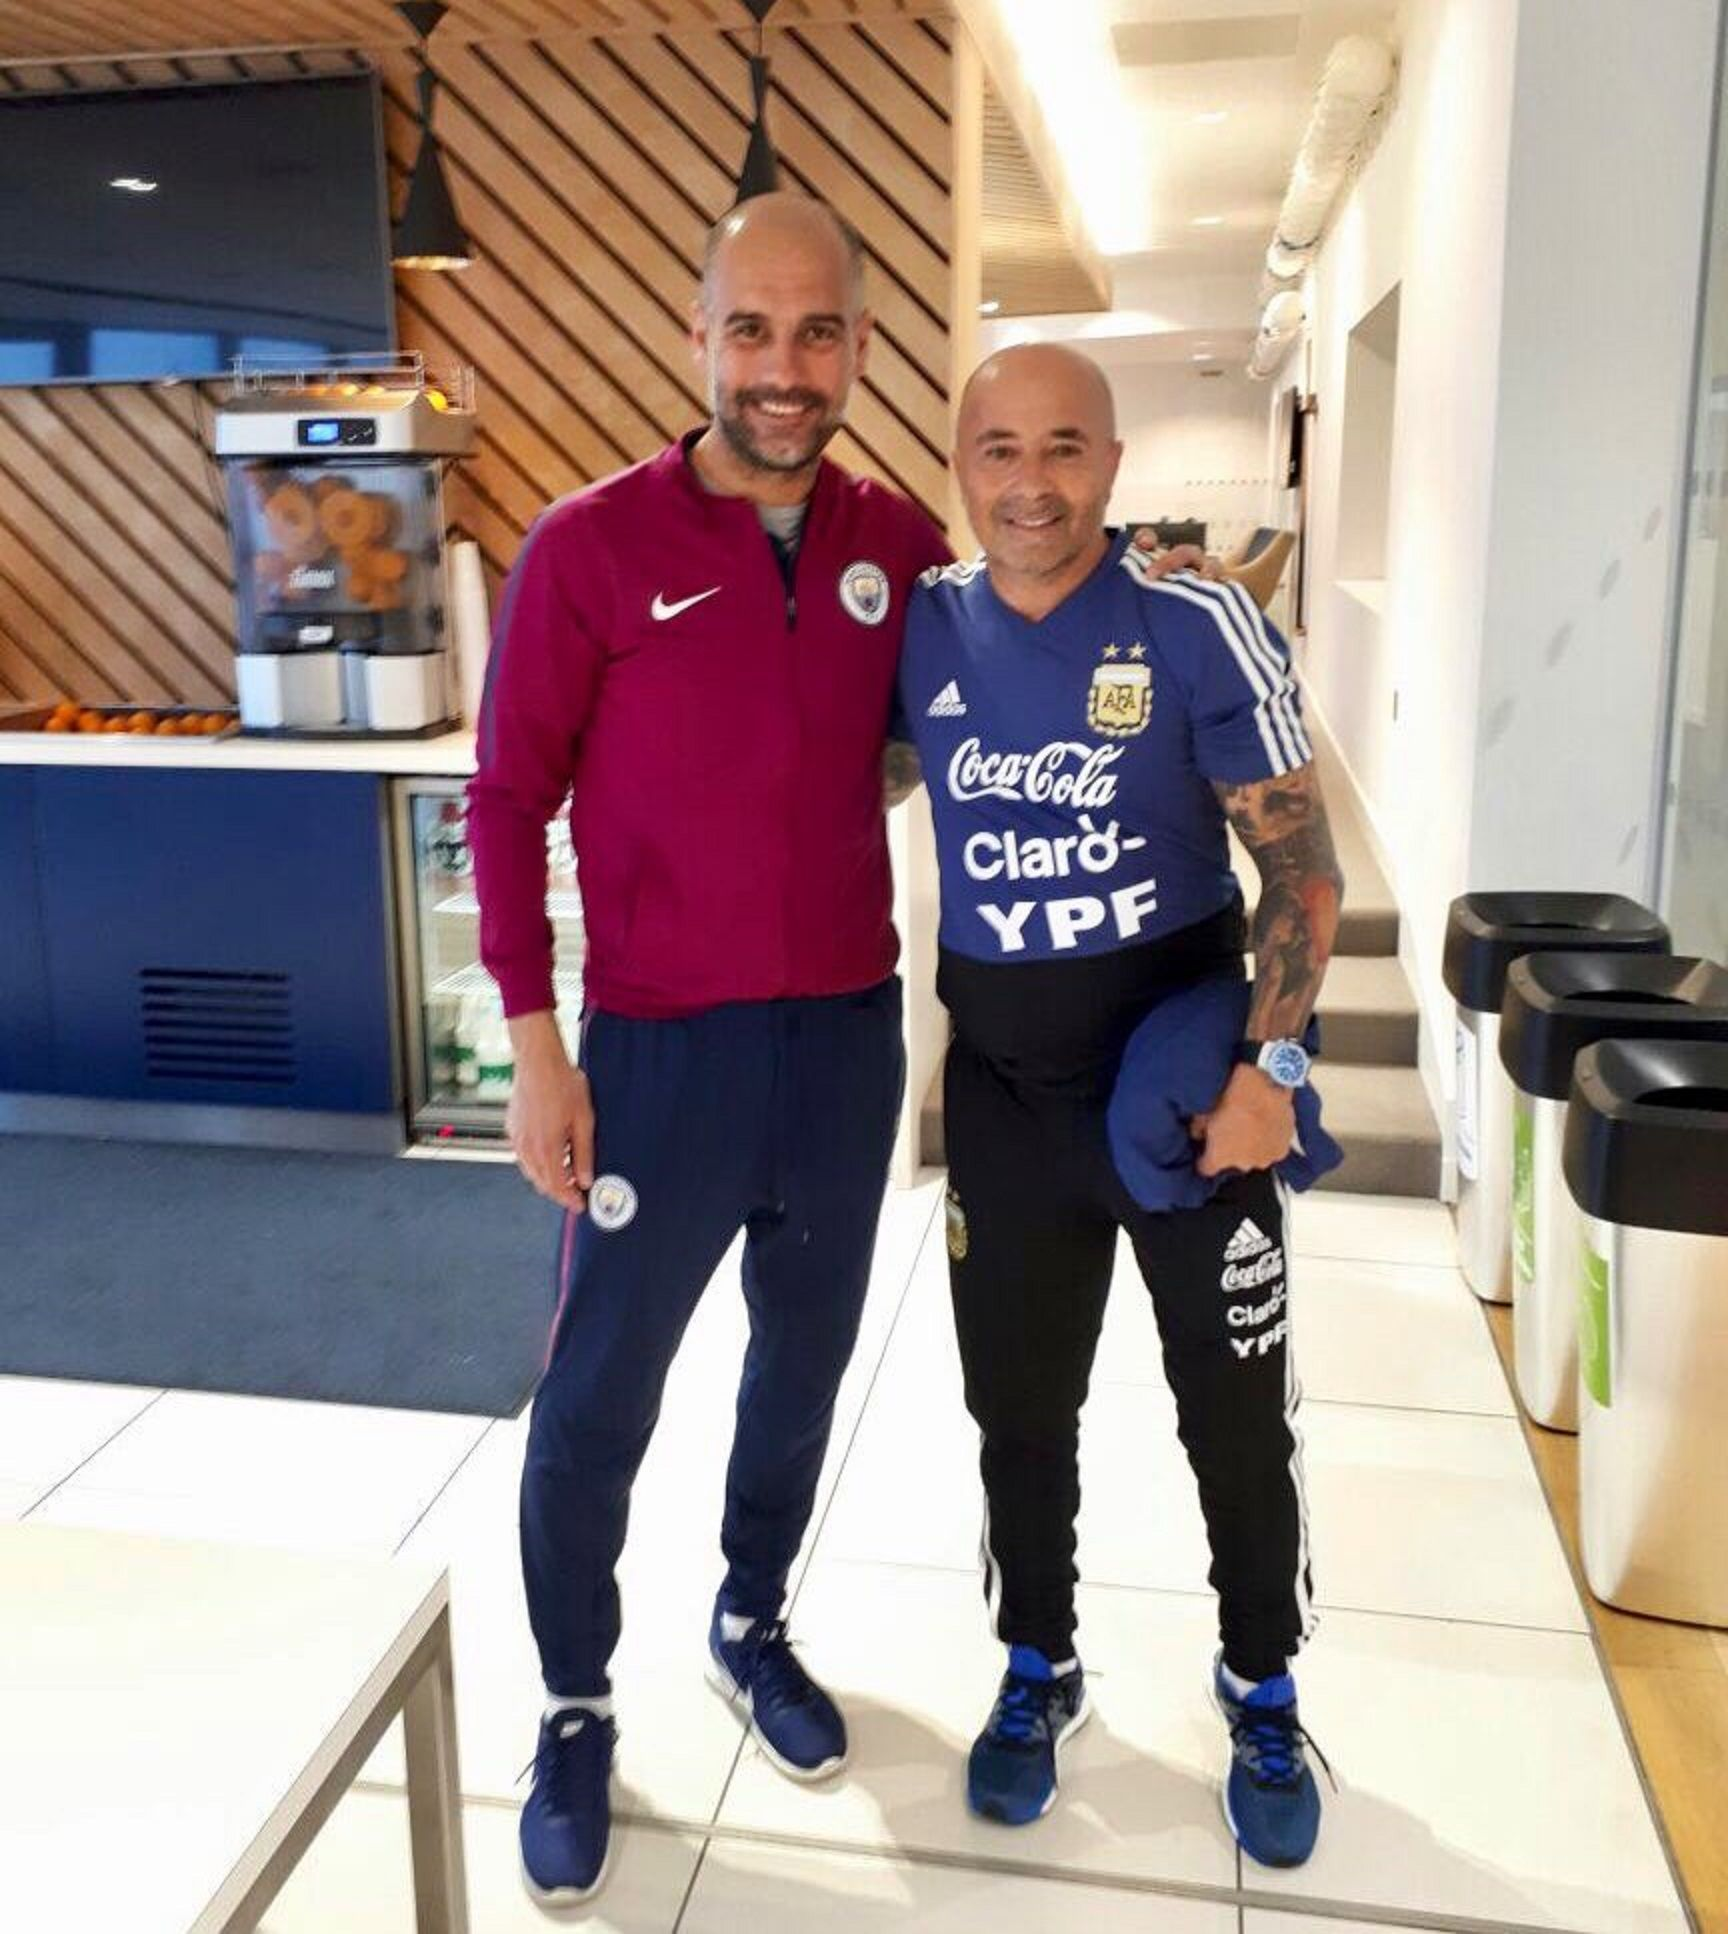 Guardiola y Sampaoli